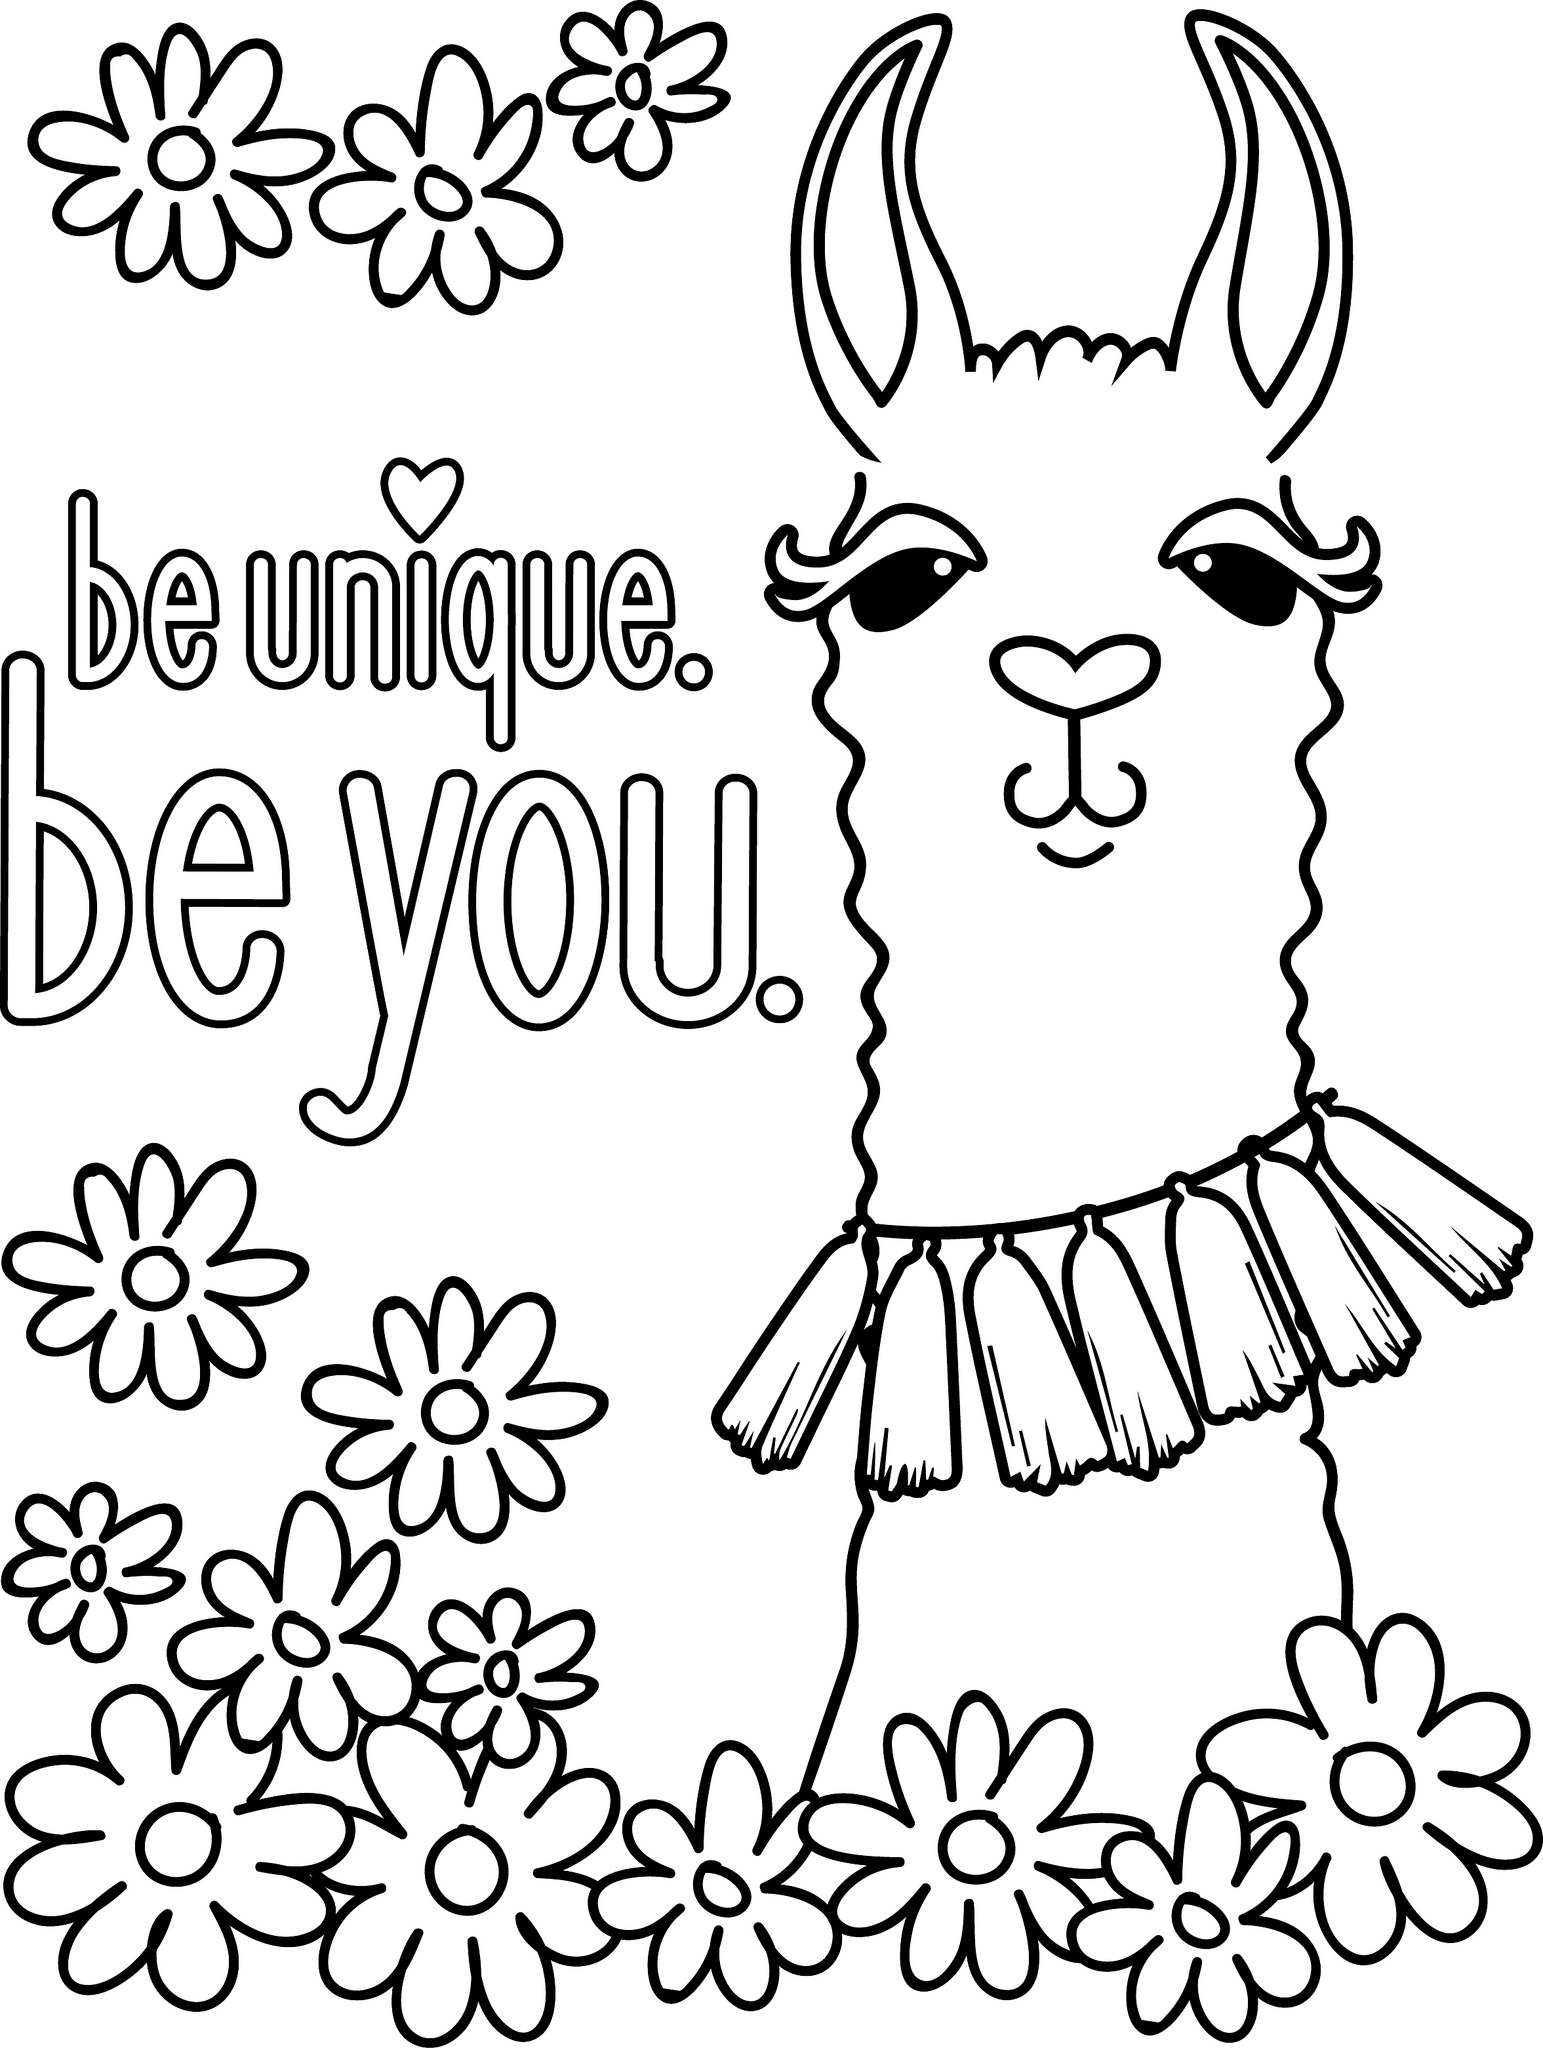 girl scout birthday coloring pages | The best free Valley coloring page images. Download from ...